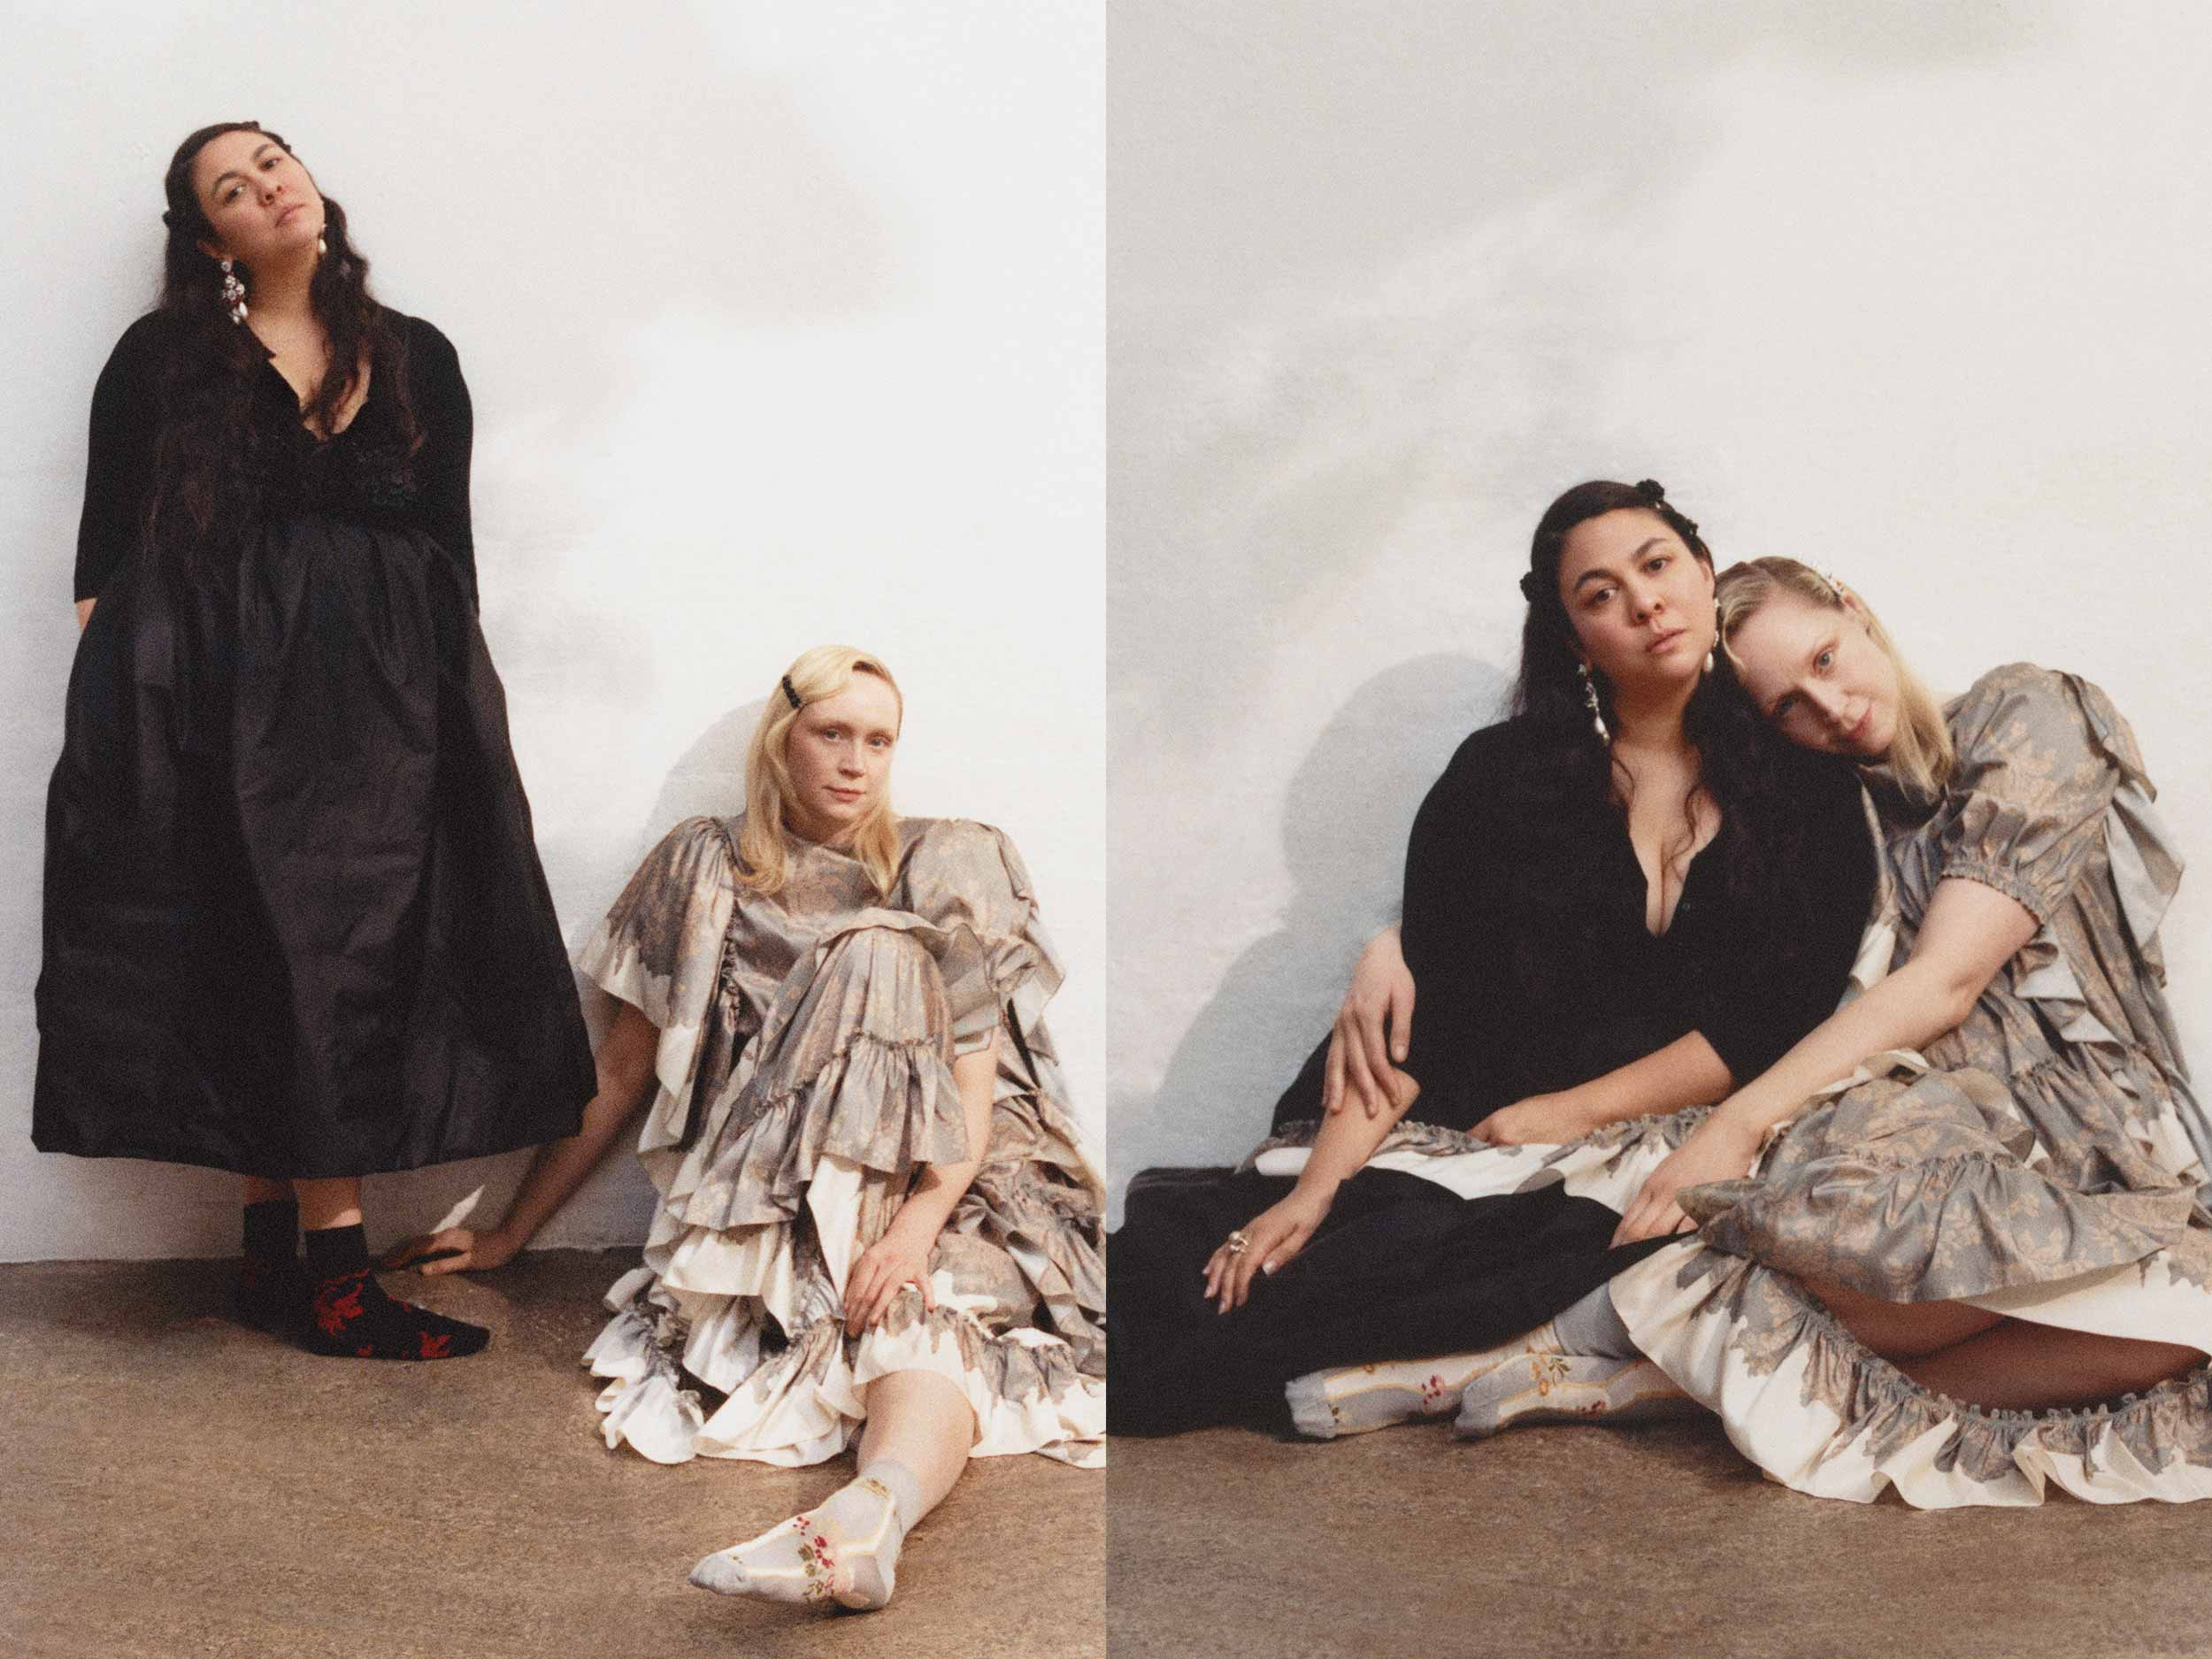 Simone Rocha and Gwendoline Christie discuss the provocative power of brutal femininity